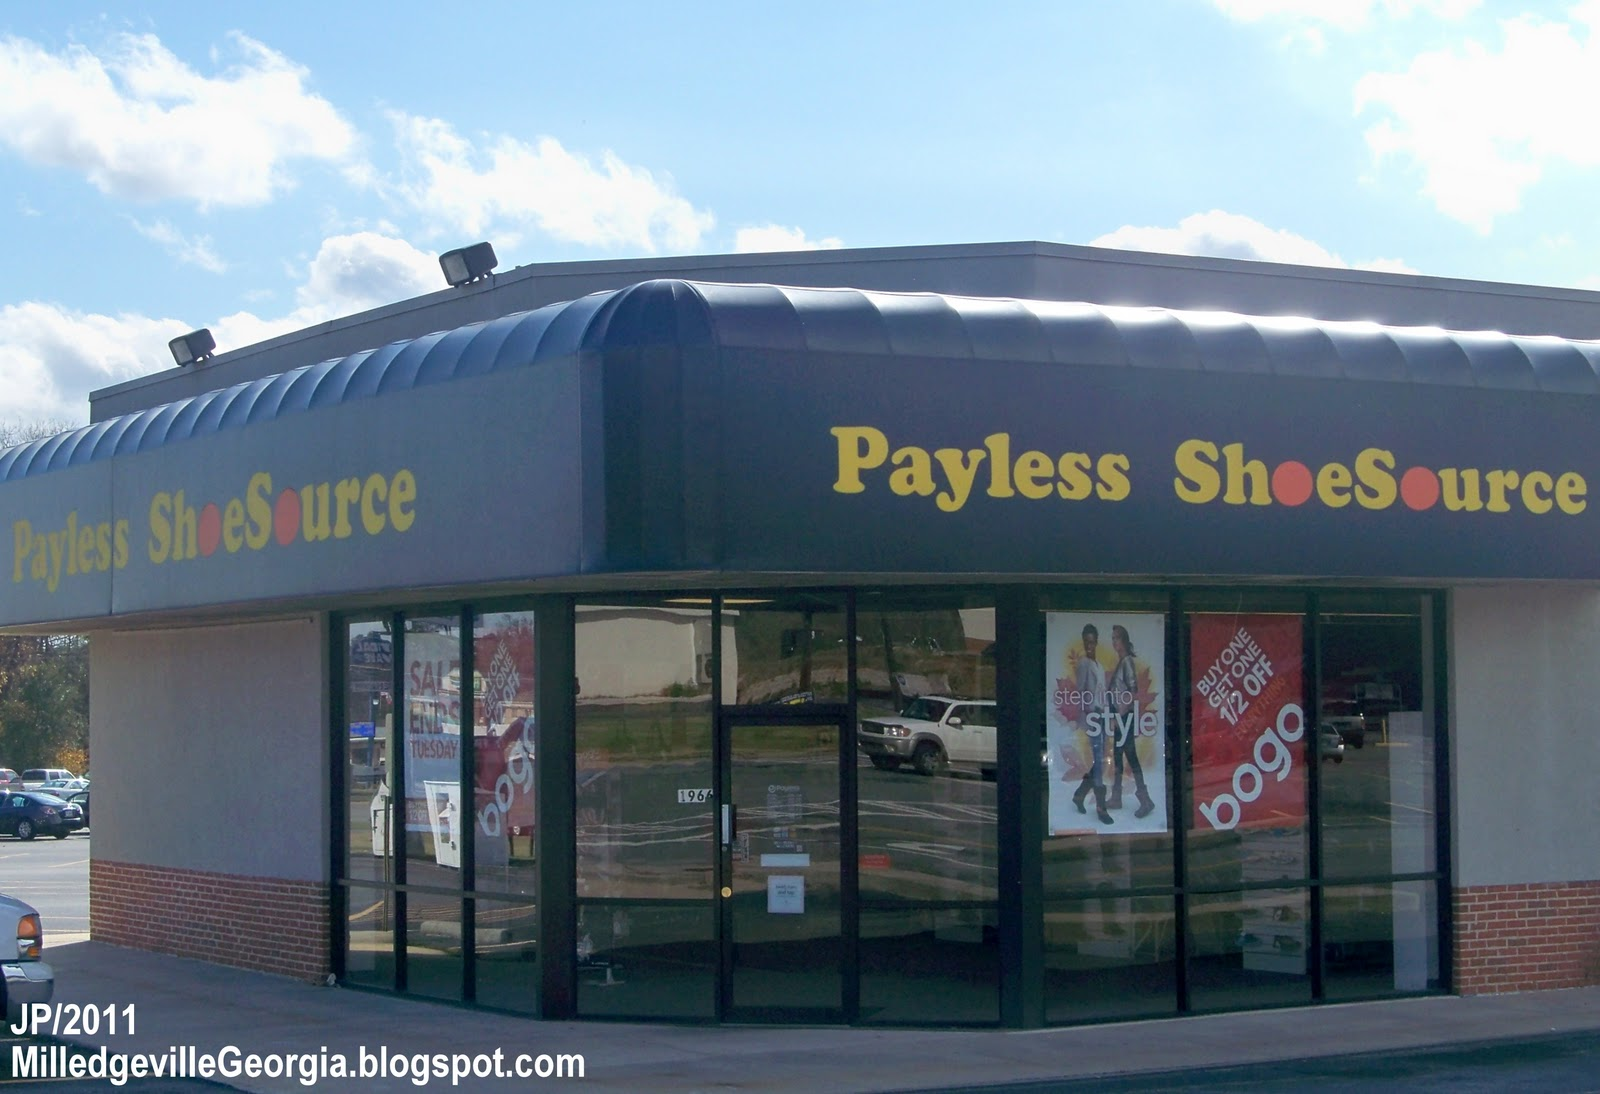 PayLess Locations. Payless ShoeSource Application. The company doesn't have any apps but only has contacts through social media through which you can connect with them. Also, they have emails and their customer care service number to help you out Incase of any problems that you might have had or some query that needs to be clarified.